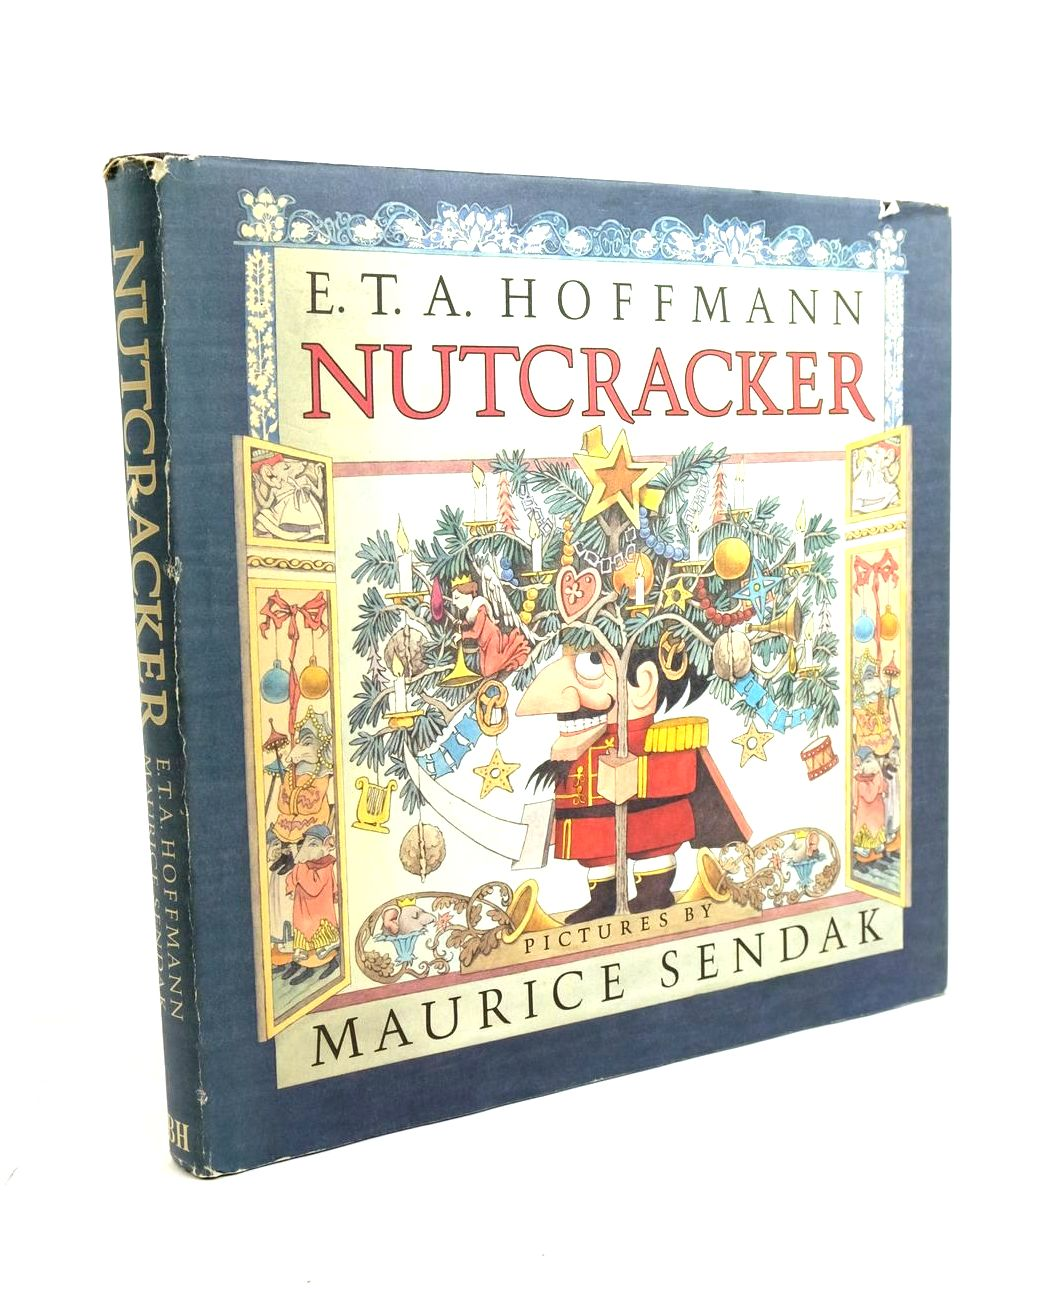 Photo of NUTCRACKER written by Hoffmann, E.T.A. illustrated by Sendak, Maurice published by The Bodley Head (STOCK CODE: 1321620)  for sale by Stella & Rose's Books